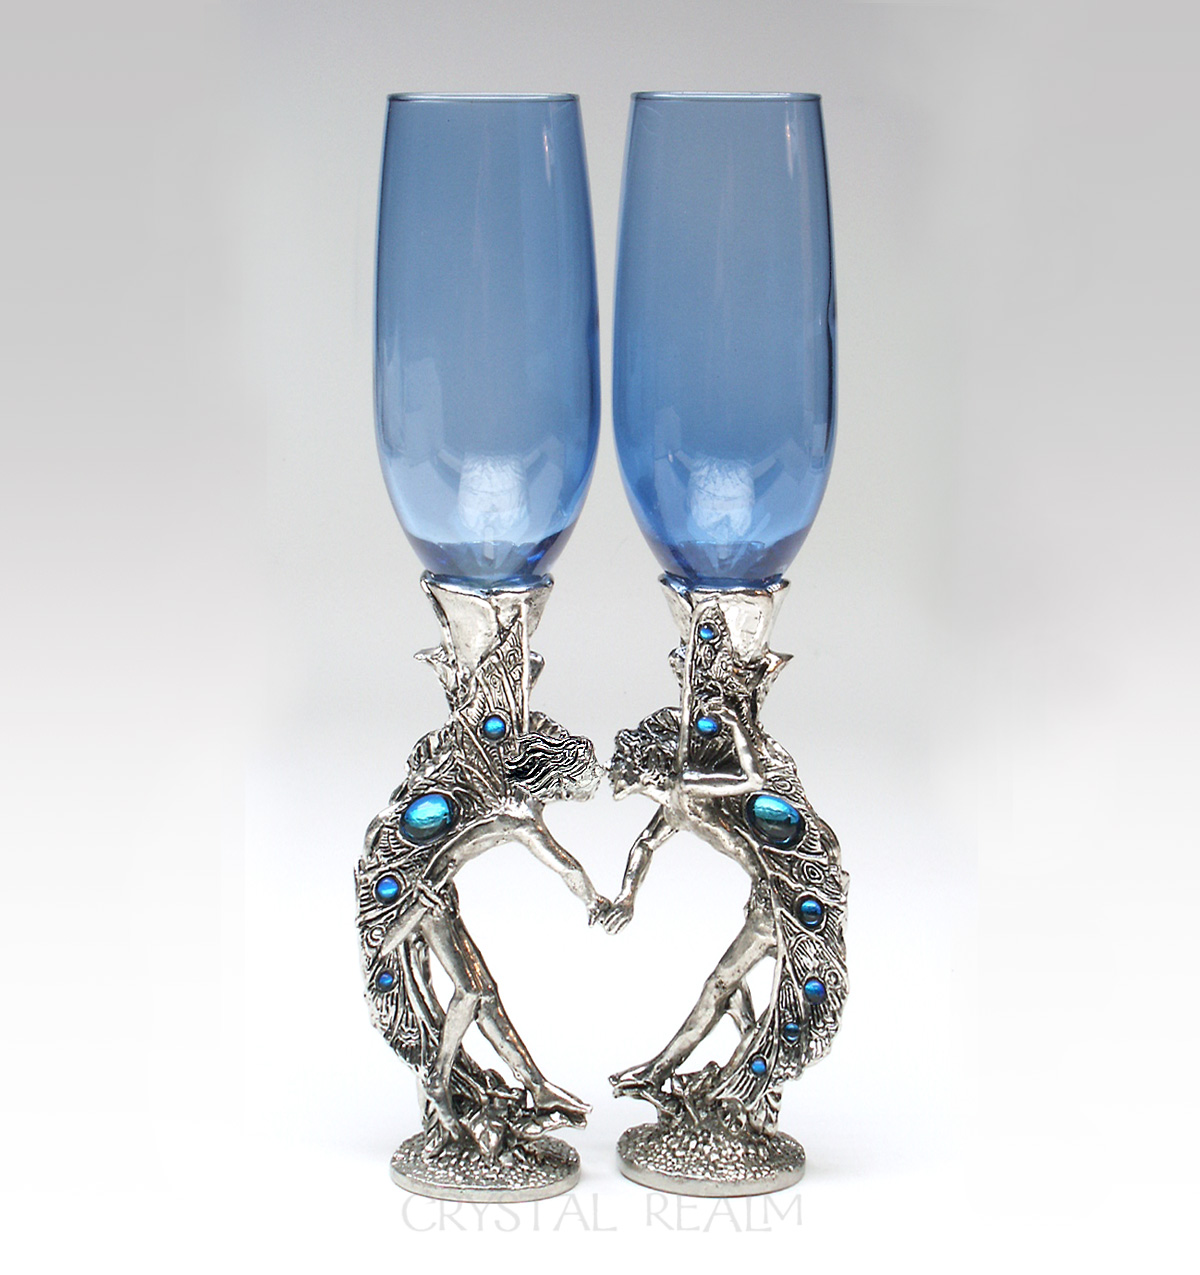 Blue champagne glasses with fairies in a heart shape